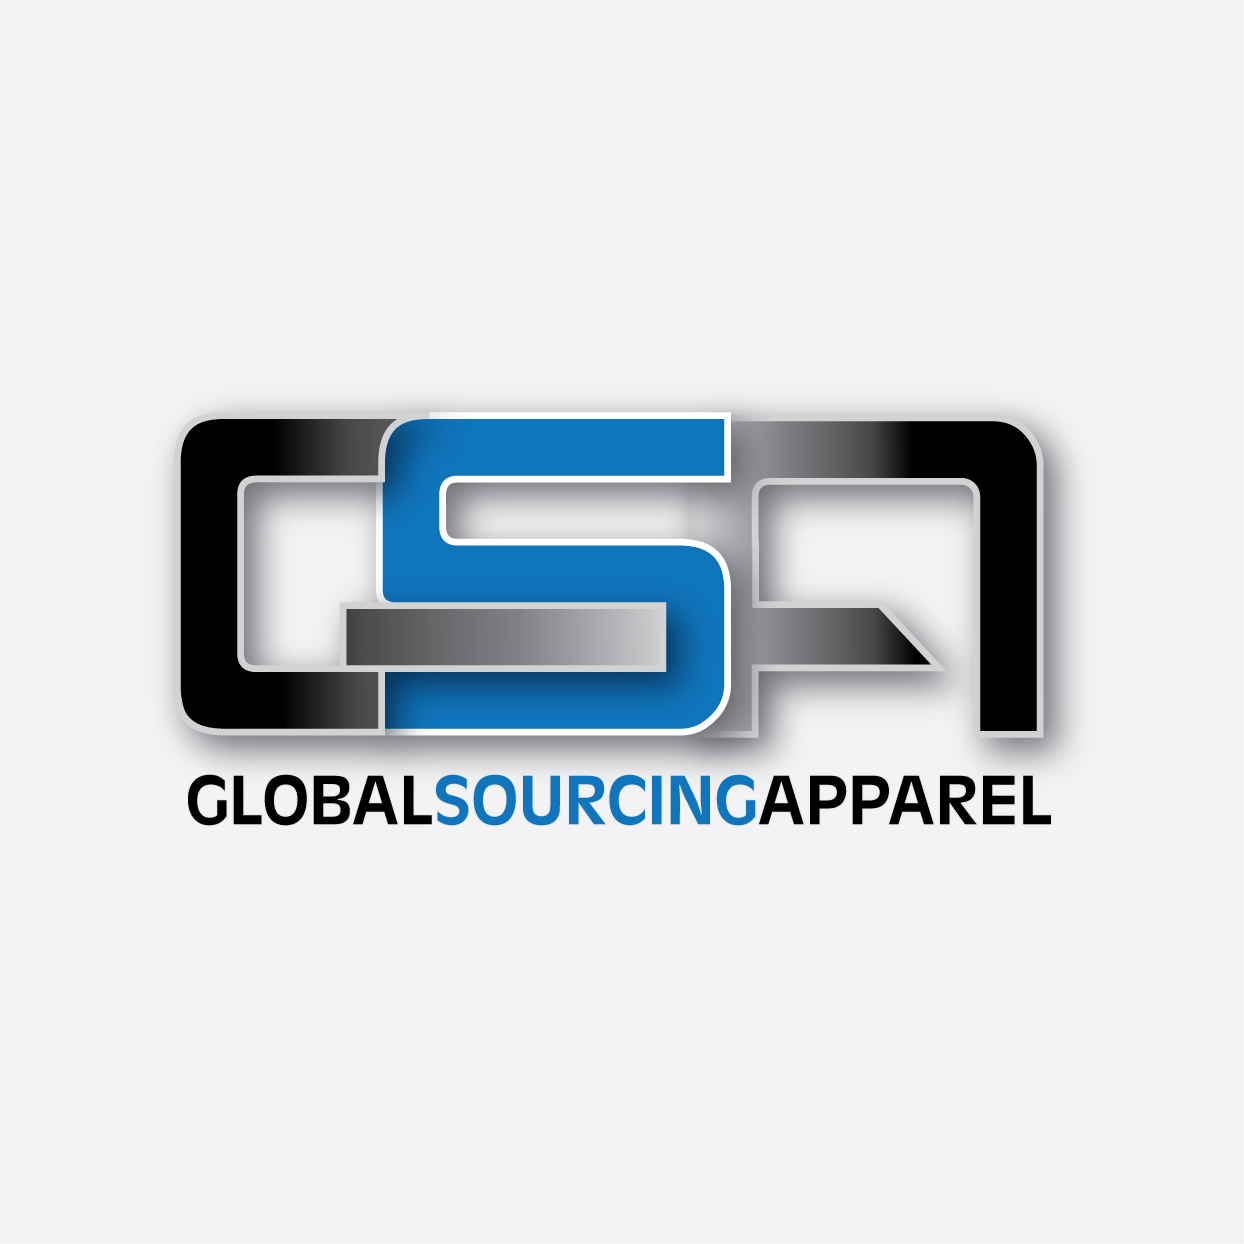 Logo Design by stormbighit - Entry No. 67 in the Logo Design Contest Fun Logo Design for Global Sourcing Apparel.